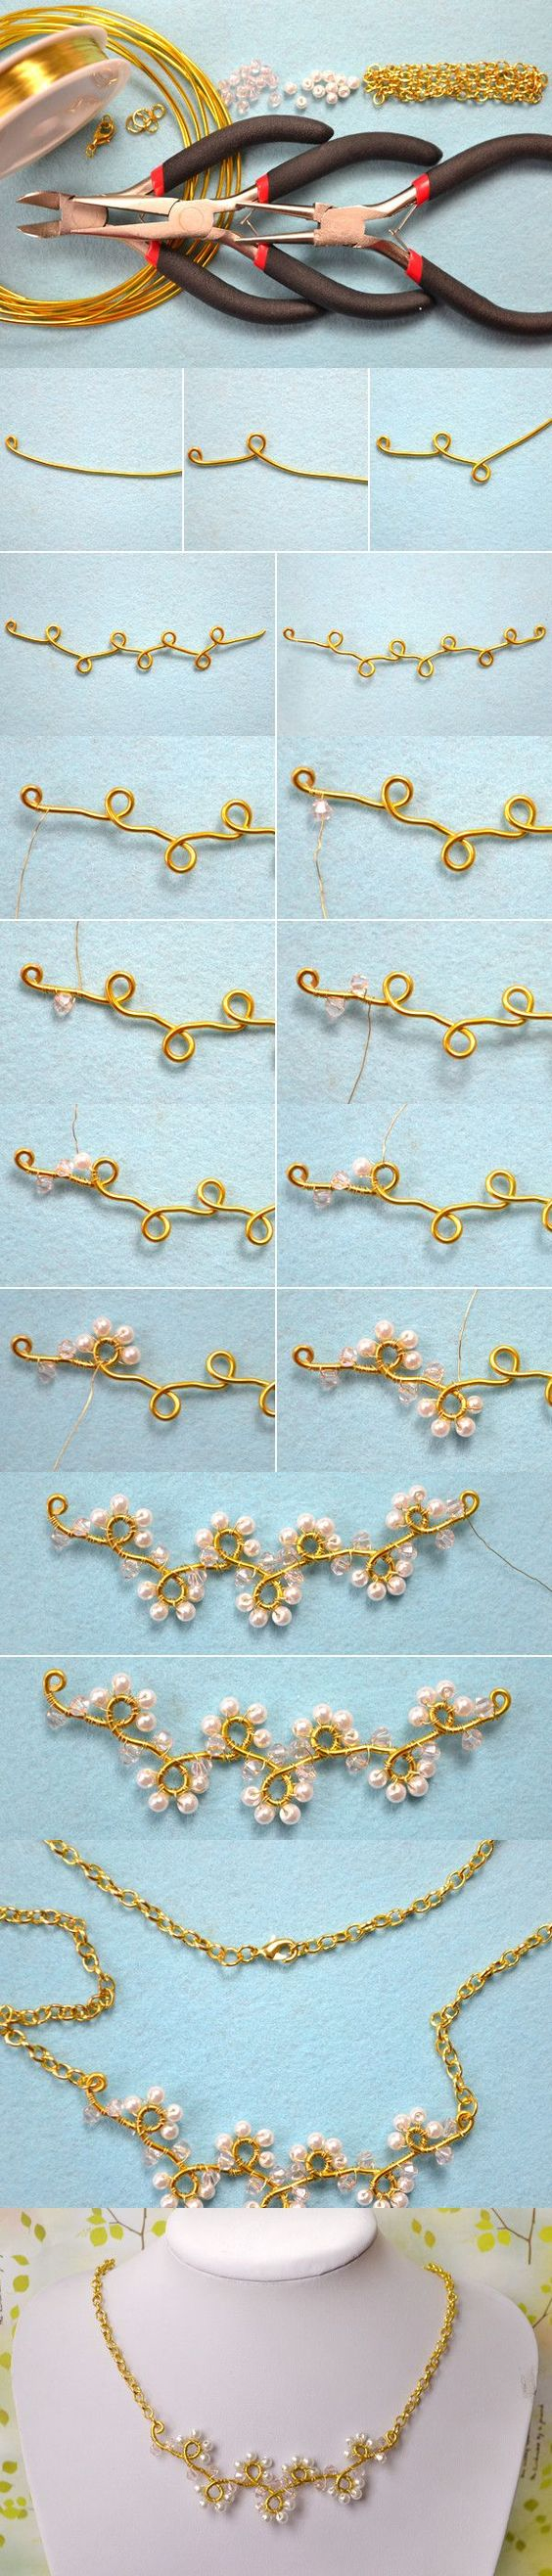 nice DIY Bijoux - Spring Jewelry Design on How to Make a Wire Flower Vine Necklace with Beads from...: